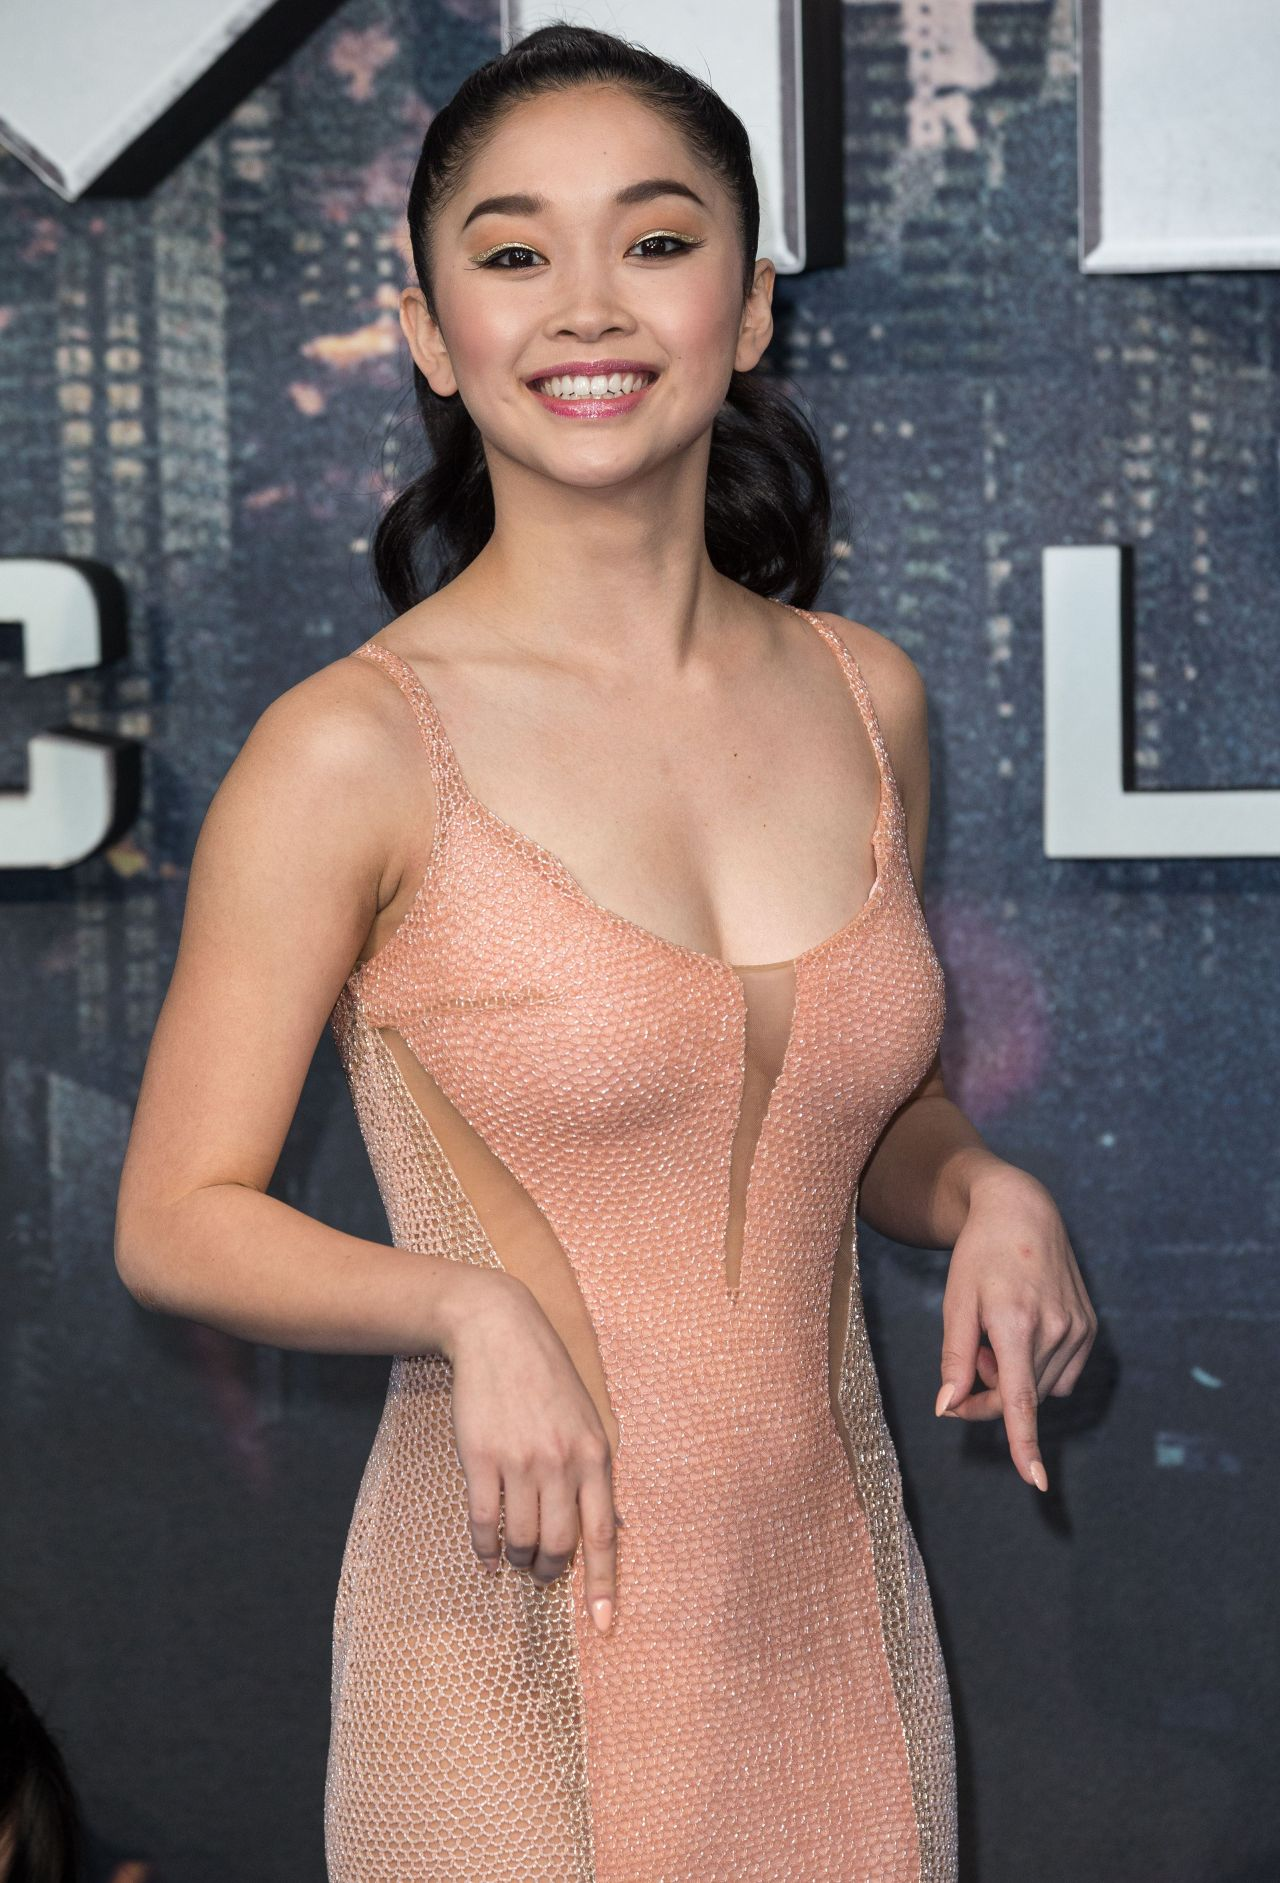 Lana Condor  X-Men Apocalypse Premiere In London, Uk 592016-5688